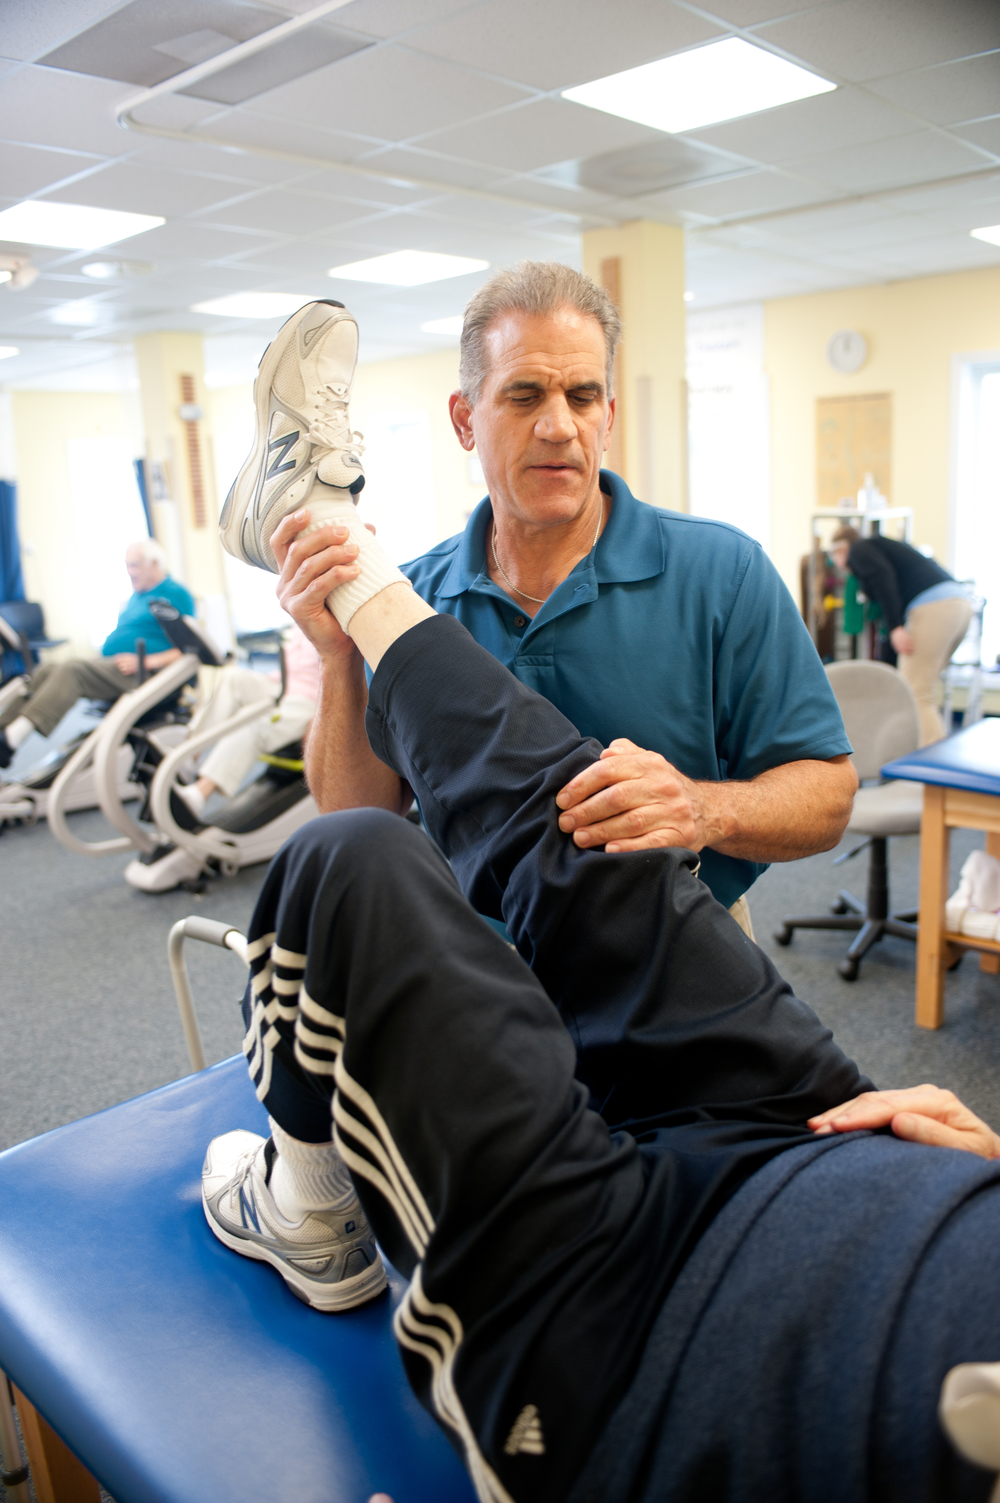 Article written by Clinical Director & Senior Physical Therapist at Tidewater Physical Therapy Ocean View, Bob Cairo. Published by Costal Point on November 6, 2016